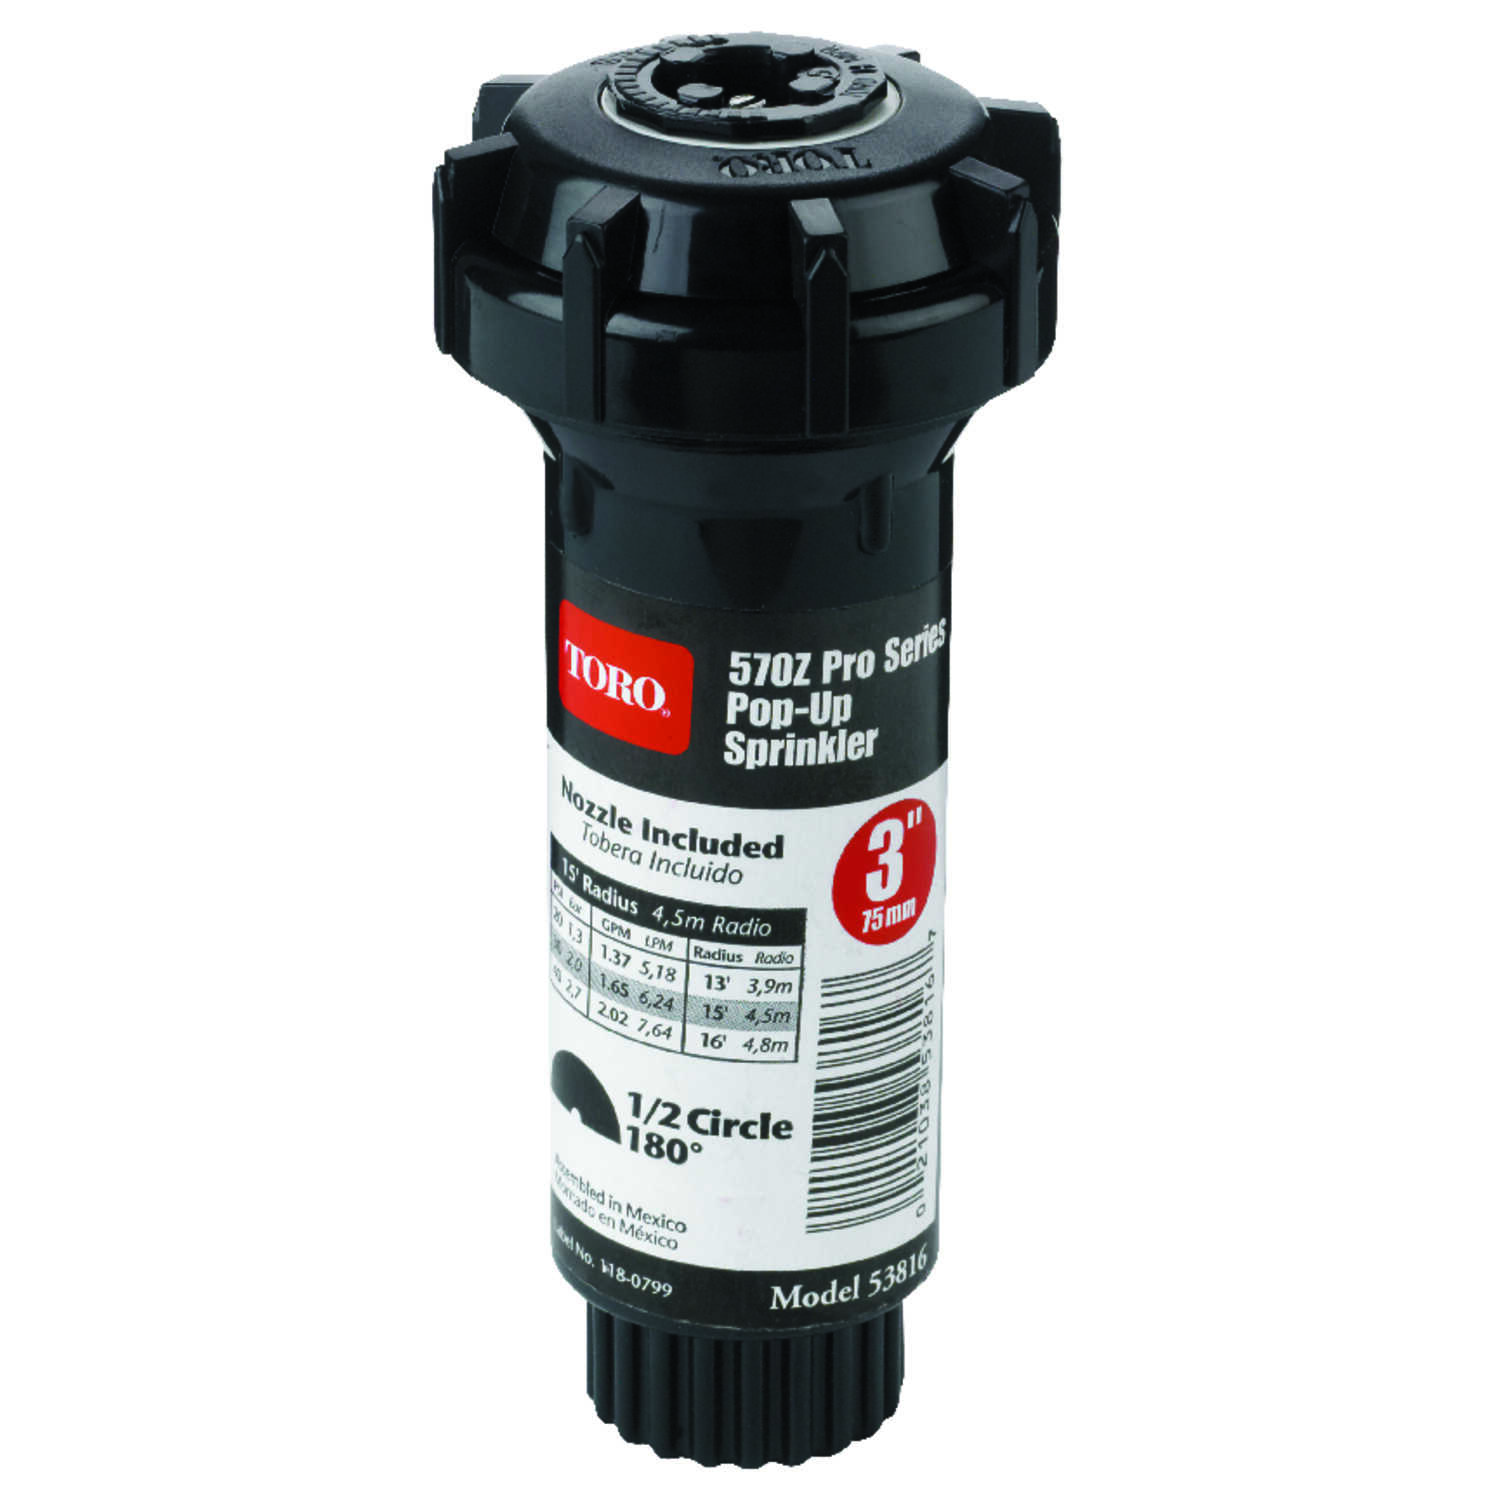 Toro  570Z Pro Series  3 in. H Half-Circle  Pop-Up Sprinkler